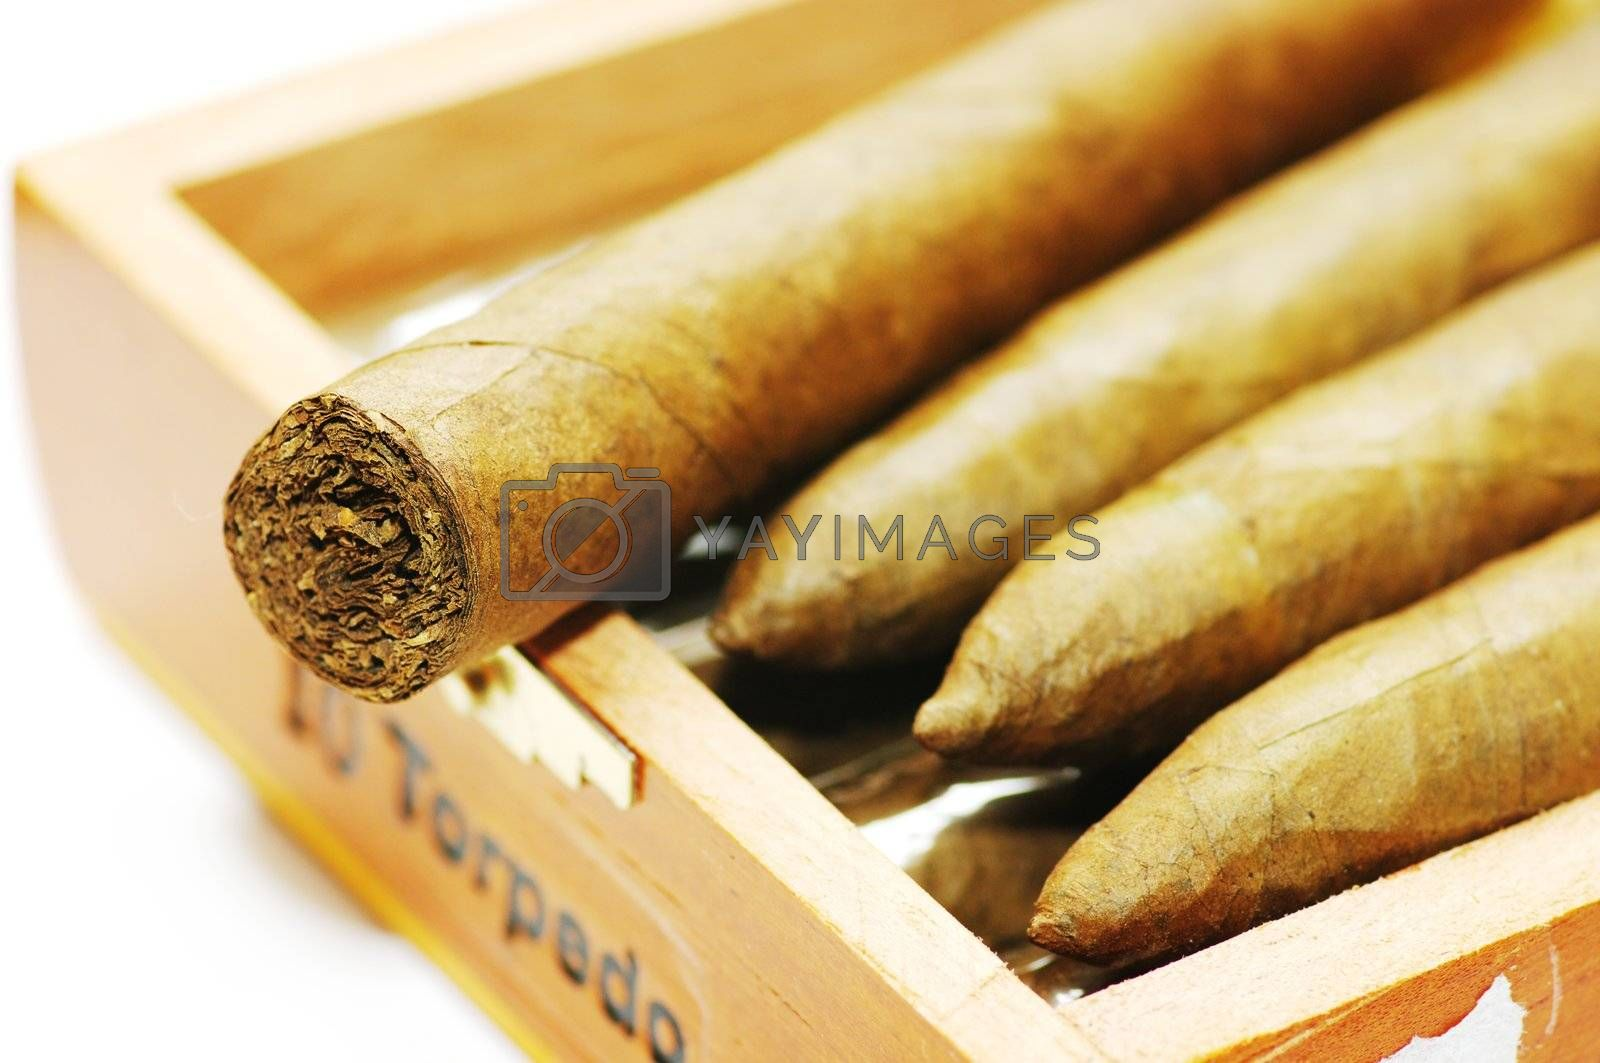 cigars are in a box. Cigars close up.